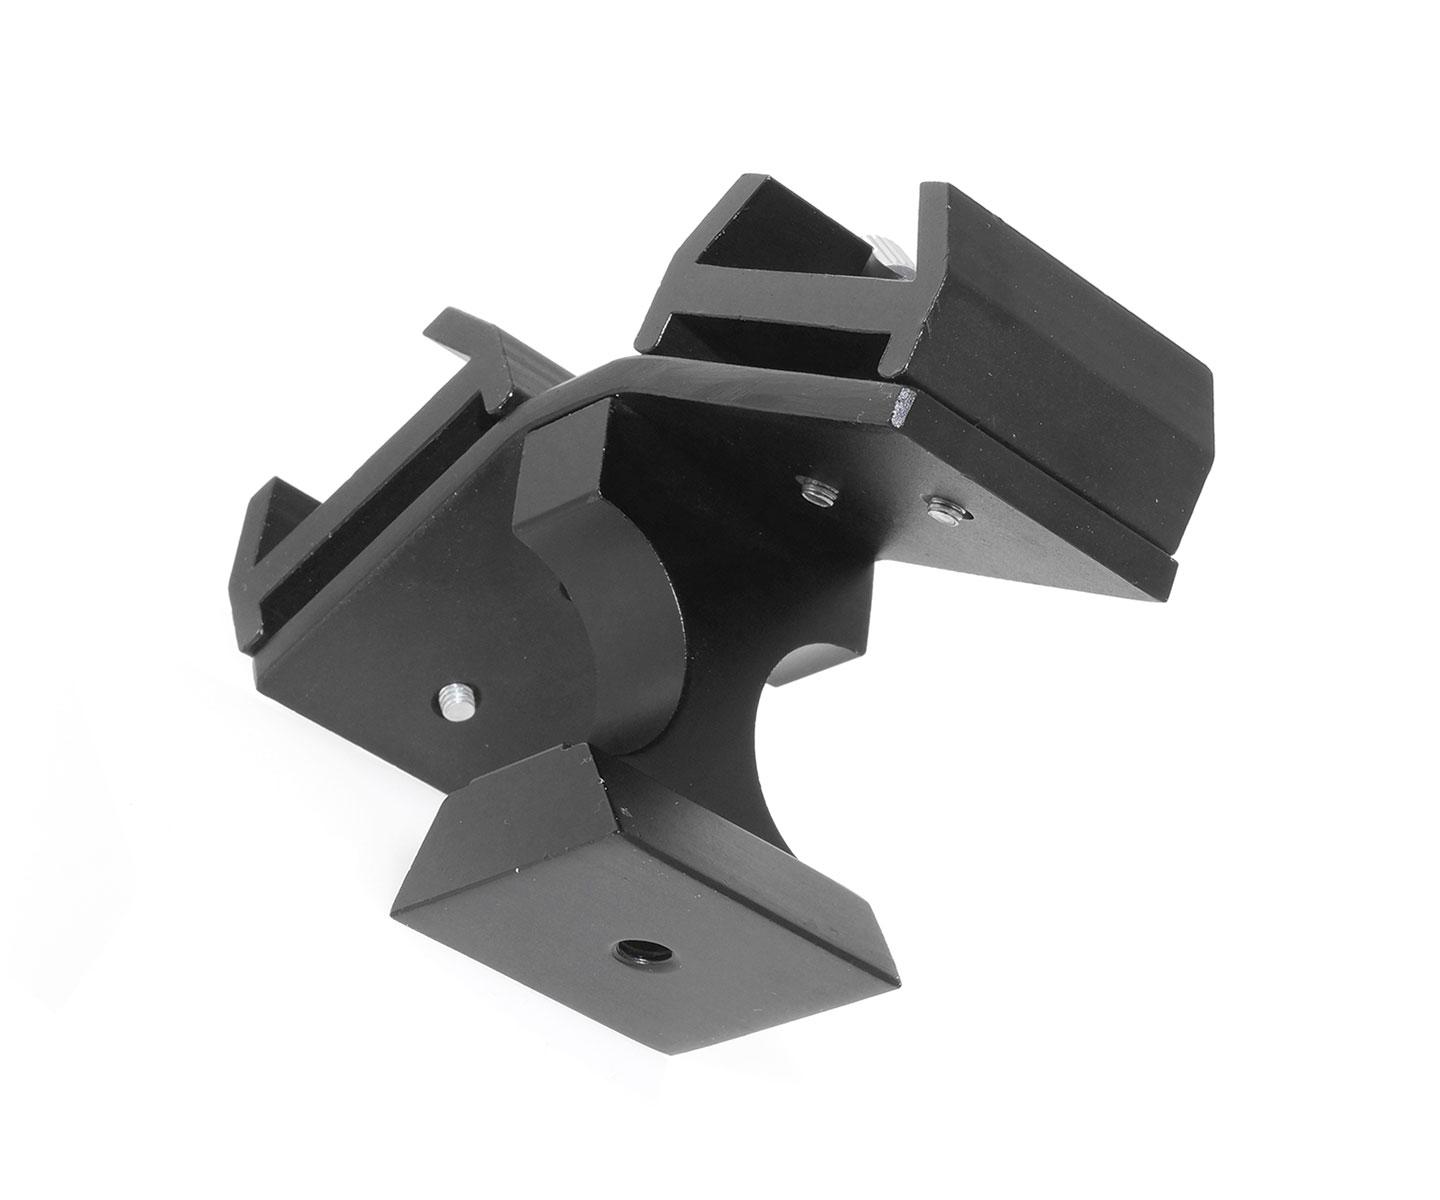 TS-Optics Dual Finder Scope Mounting Bracket - Findershoe for 2 Finderscopes [EN]